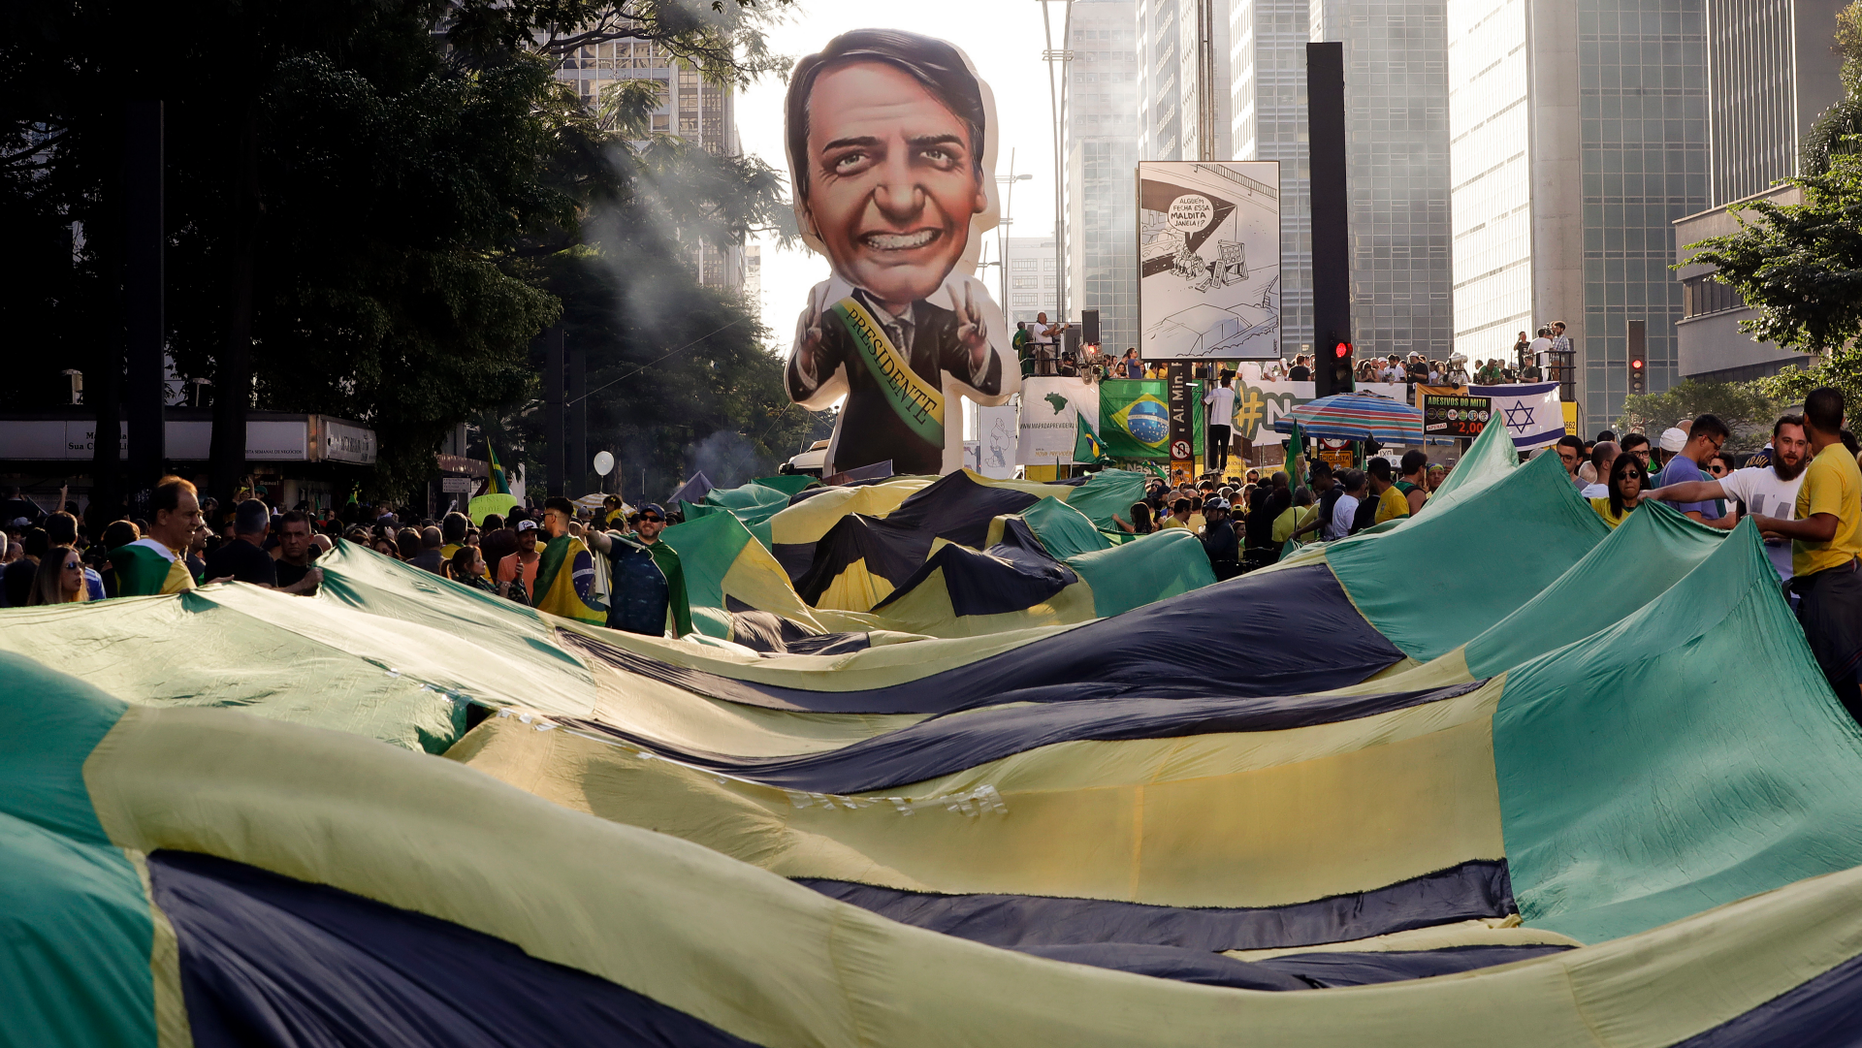 Supporters of Brazil's President Jair Bolsonaro feature a large, inflatable doll in his image as they demonstrate along Paulista Avenue in Sao Paulo, Brazil, Sunday, May 26, 2019. The pro-Bolsonaro rally follows anti-government protests against education budget cuts as the president also battles an uncooperative Congress, a family corruption scandal and falling approval ratings after five months in office. (AP Photo/Andre Penner)